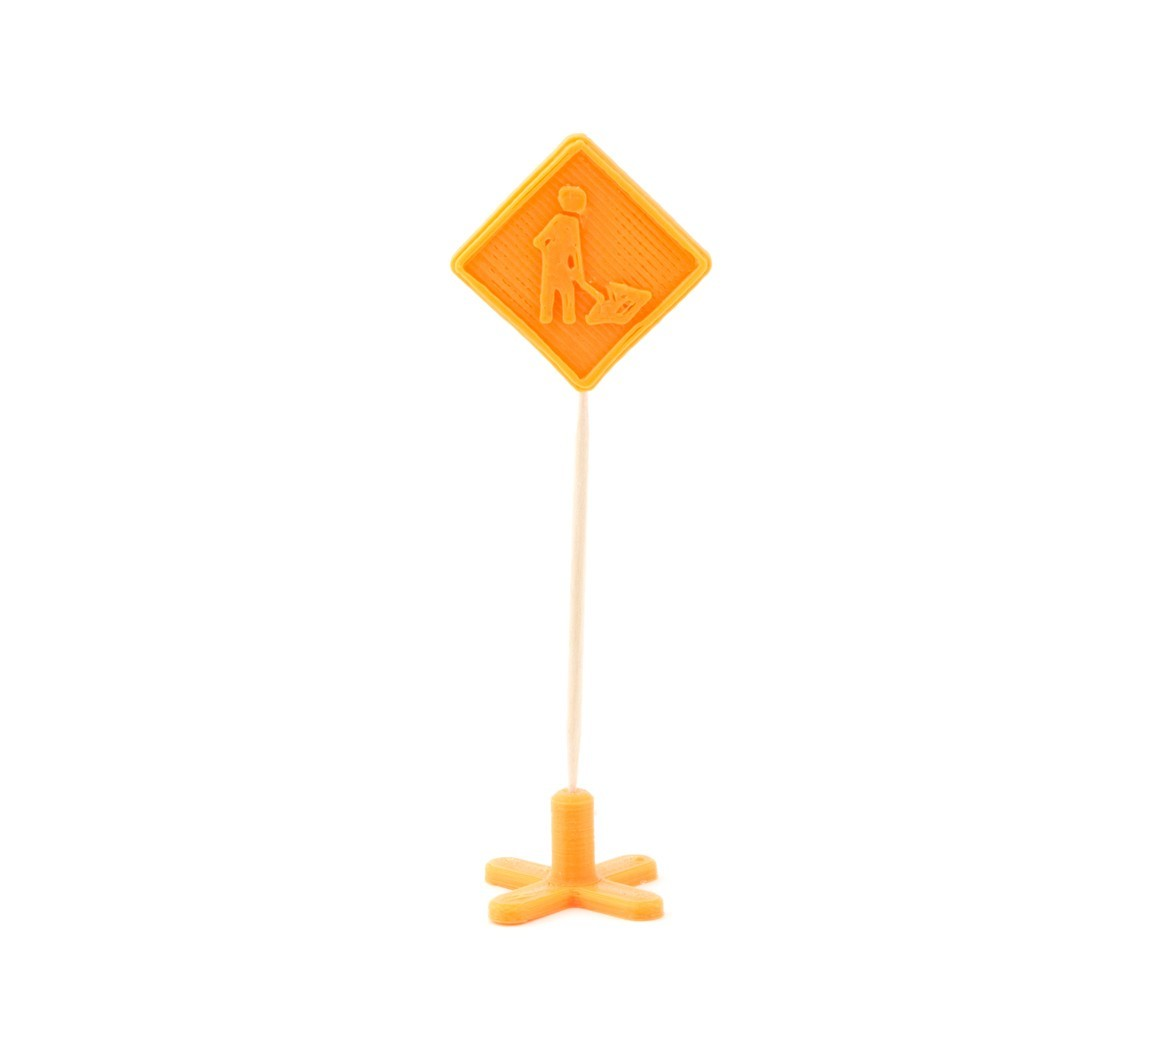 dad355512933513adea5ab2c47ce22d6_1449531099637_11.20.15-product-shoot-139.jpg Download free STL file Traffic Road Signs • 3D printable template, Emiliano_Brignito